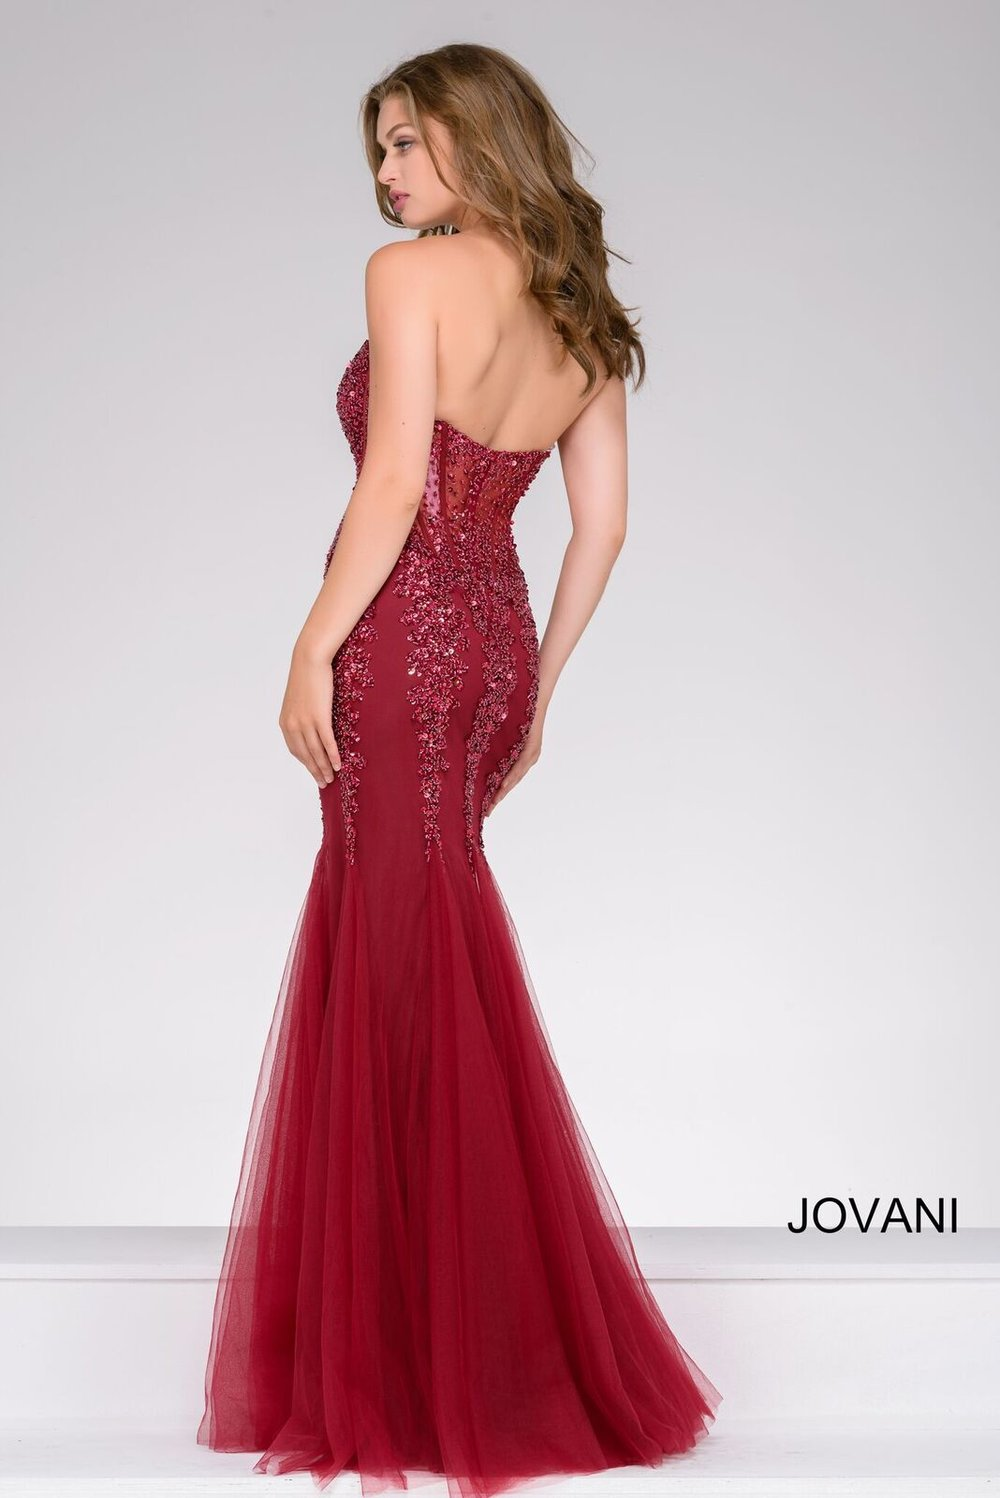 See Through Bodice Prom Dress